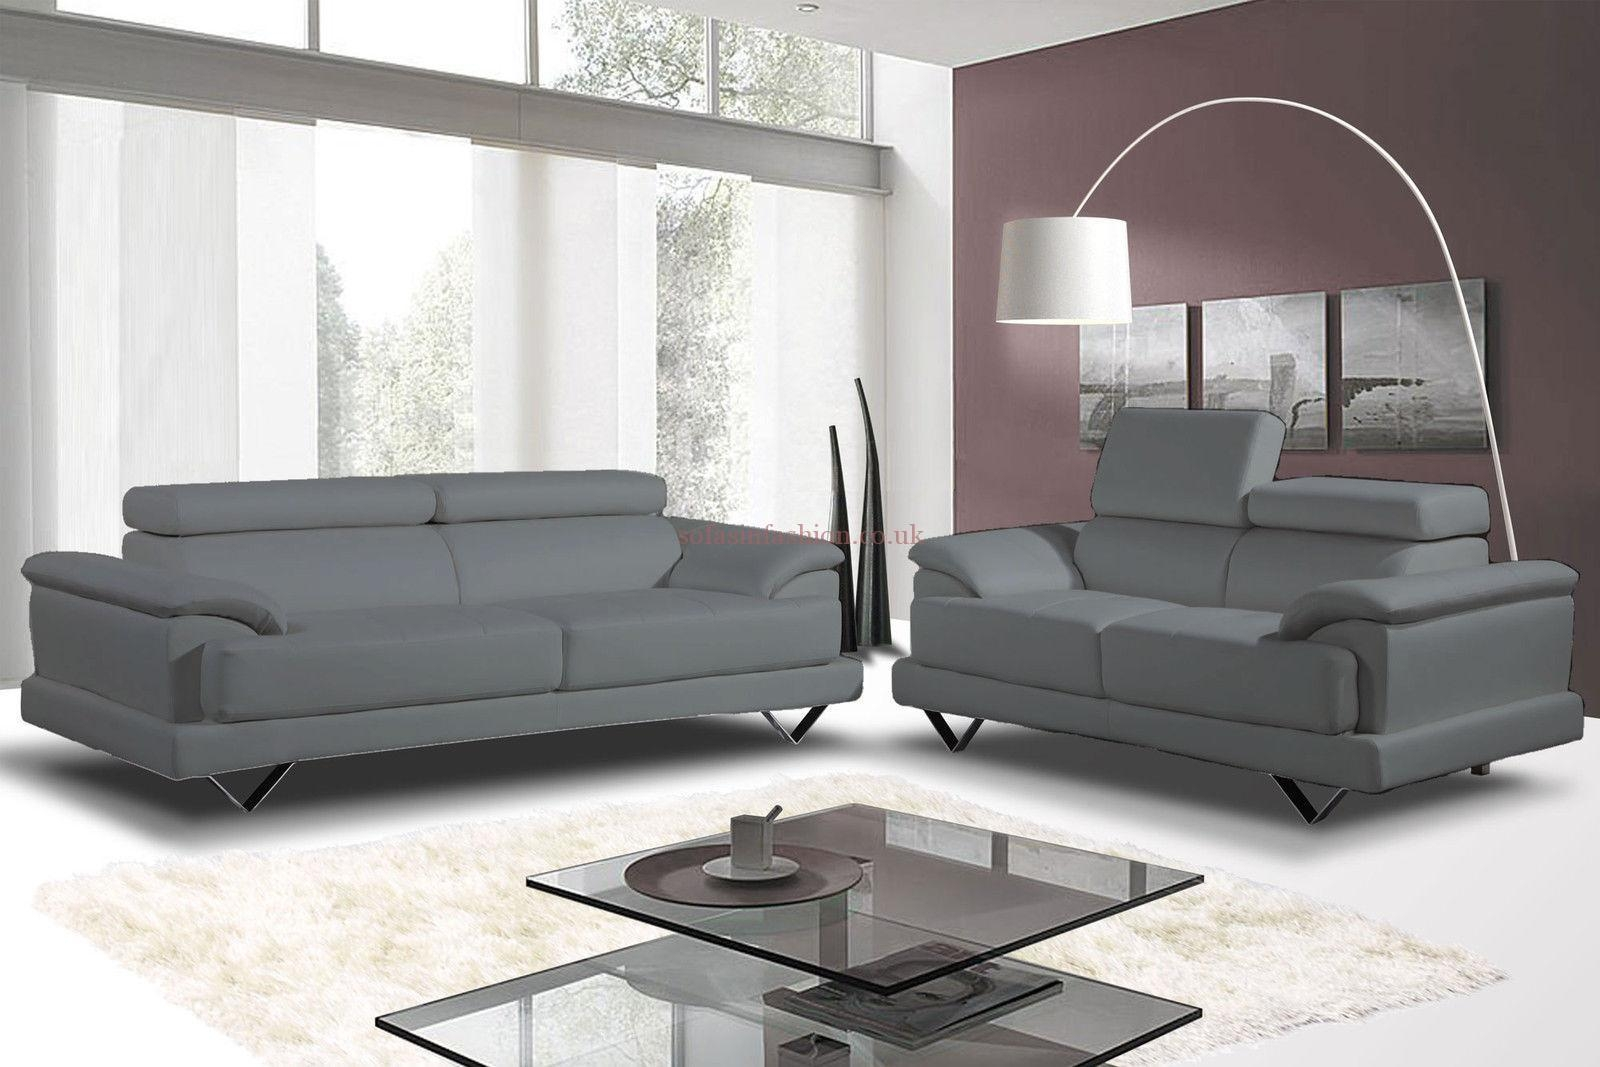 Sofa Set Grau 20 Collection Of Grey Sofa Chairs Sofa Ideas